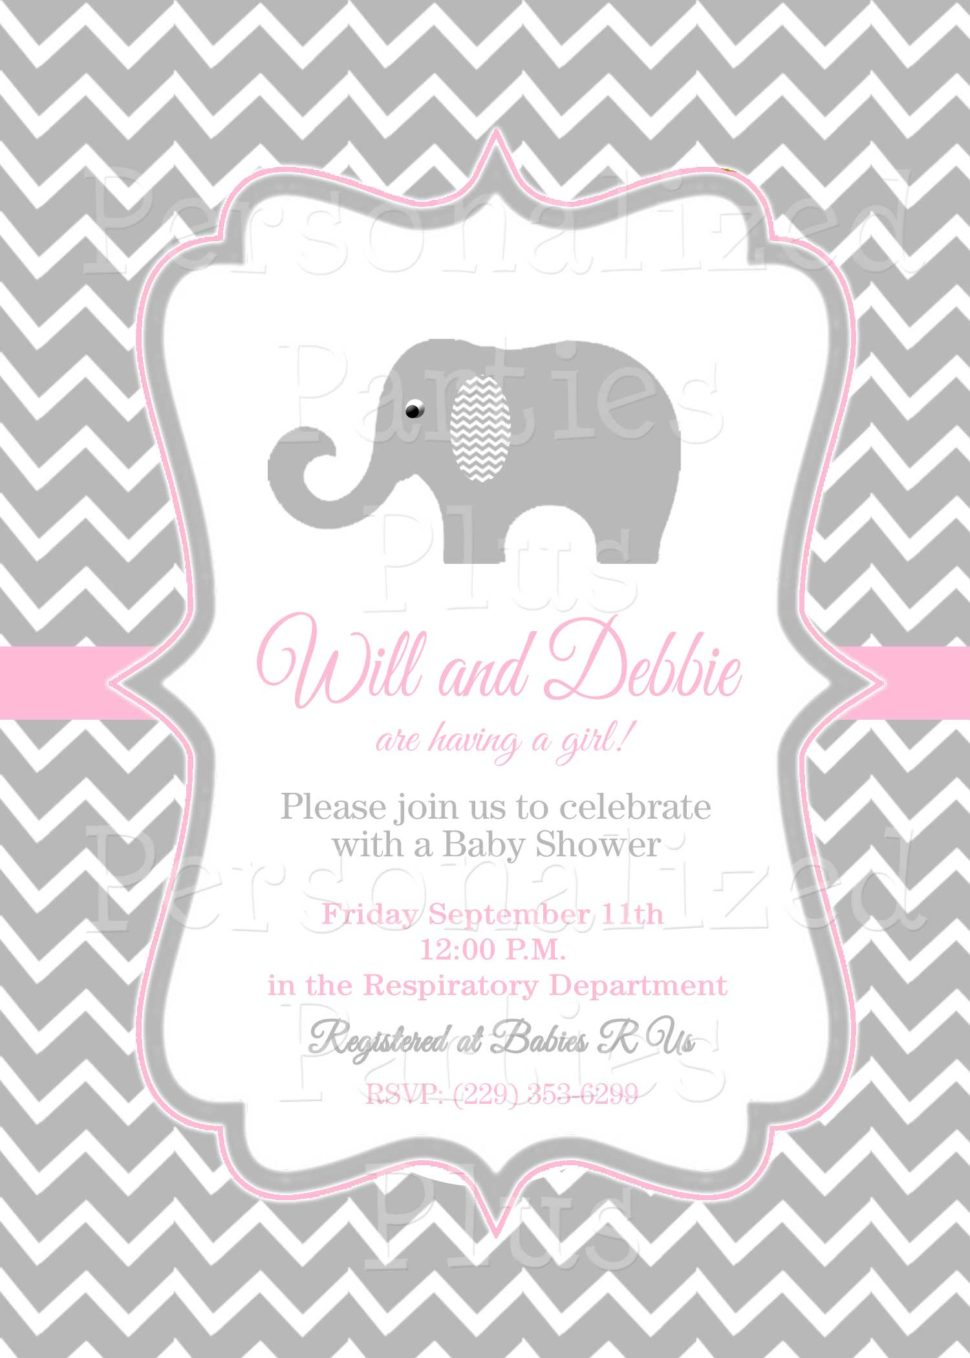 Medium Size of Baby Shower:inspirational Elephant Baby Shower Invitations Photo Concepts Baby Shower Party Favors Baby Shower Tea Baby Shower Templates Indian Baby Shower